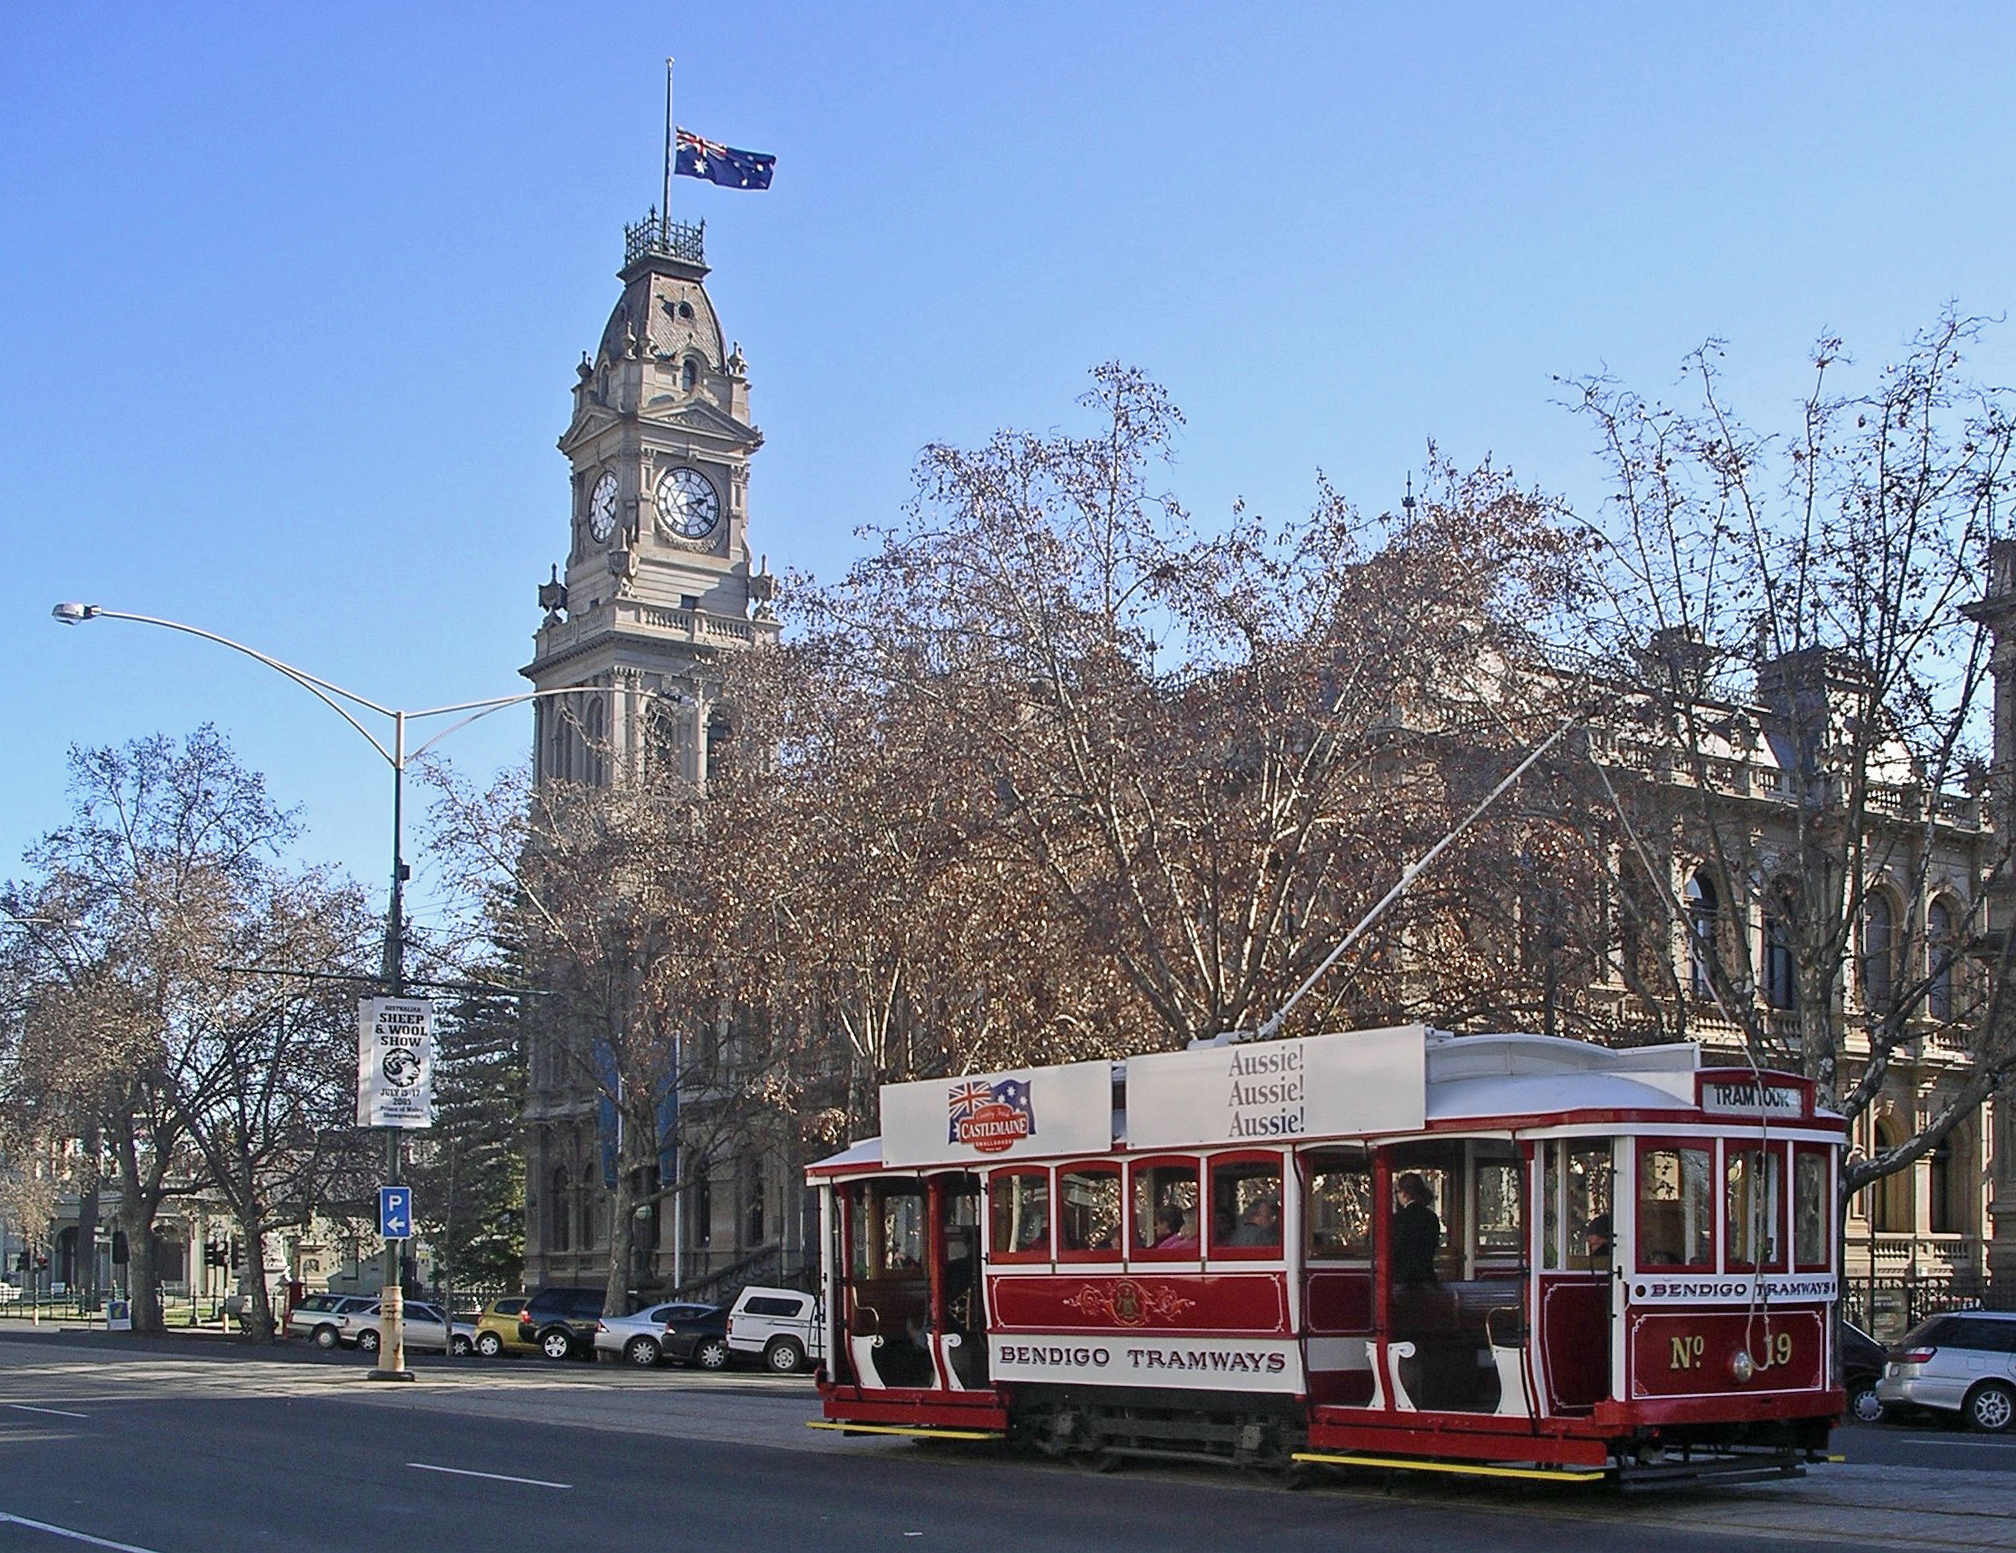 File:Bendigo talking tram.jpg - Wikipedia, the free encyclopedia